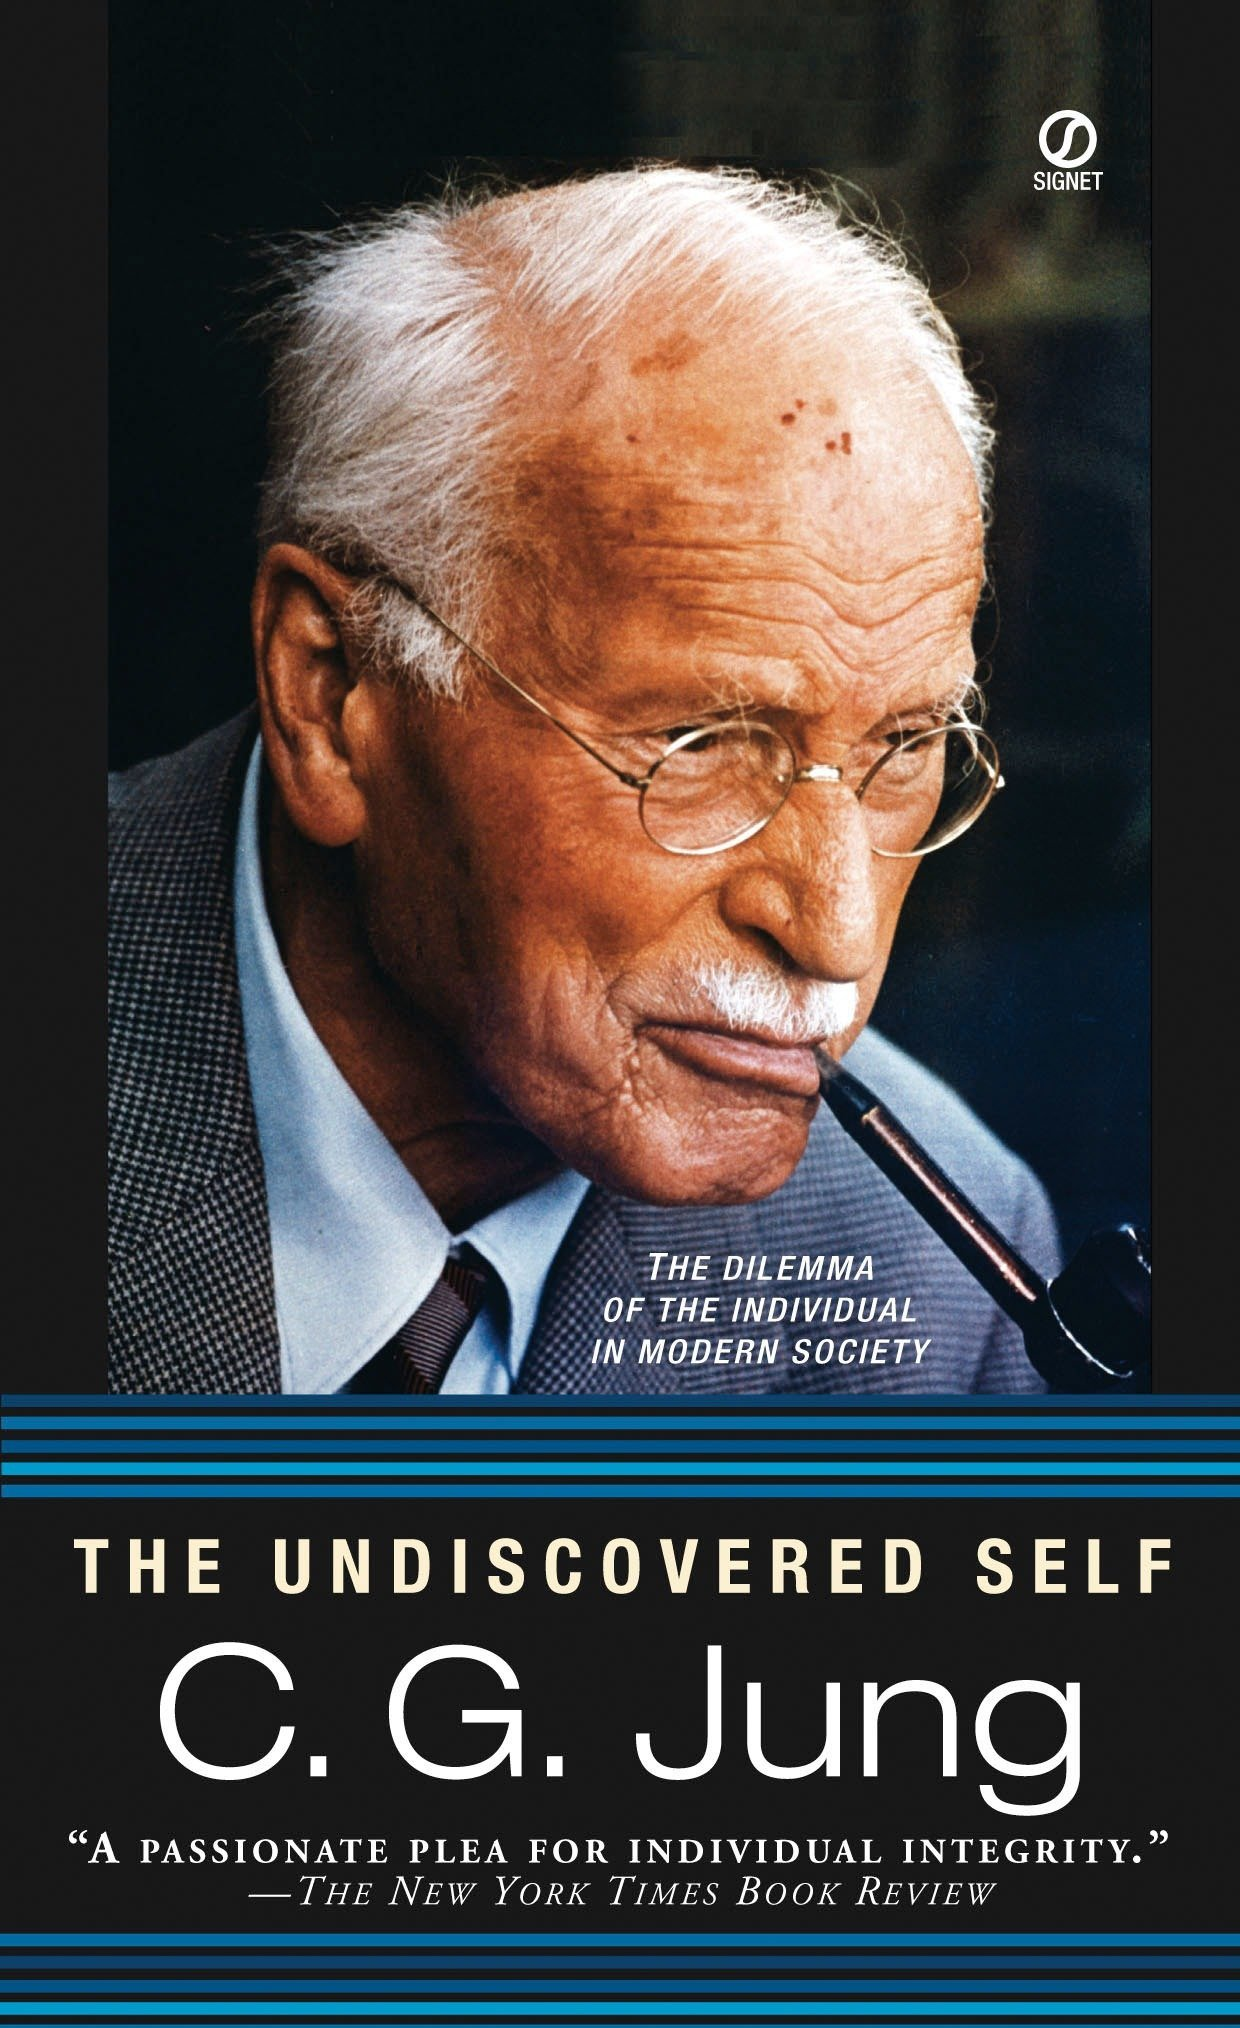 The Undiscovered Self: The Dilemma of the